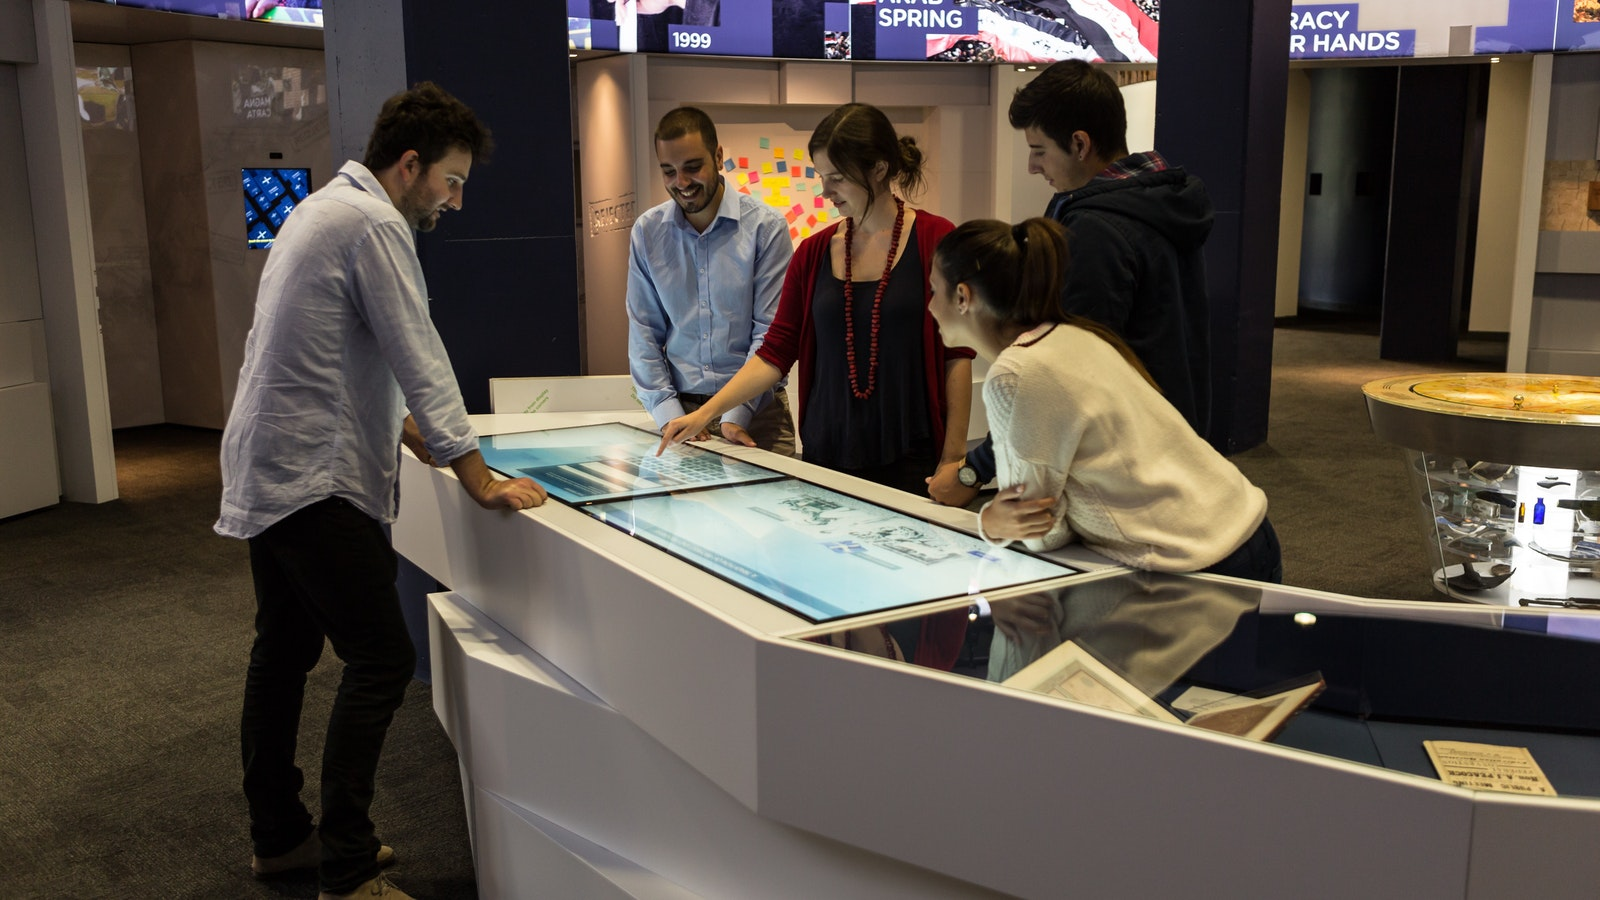 State-of-the-art touchscreens tell the story of the Eureka Stockade